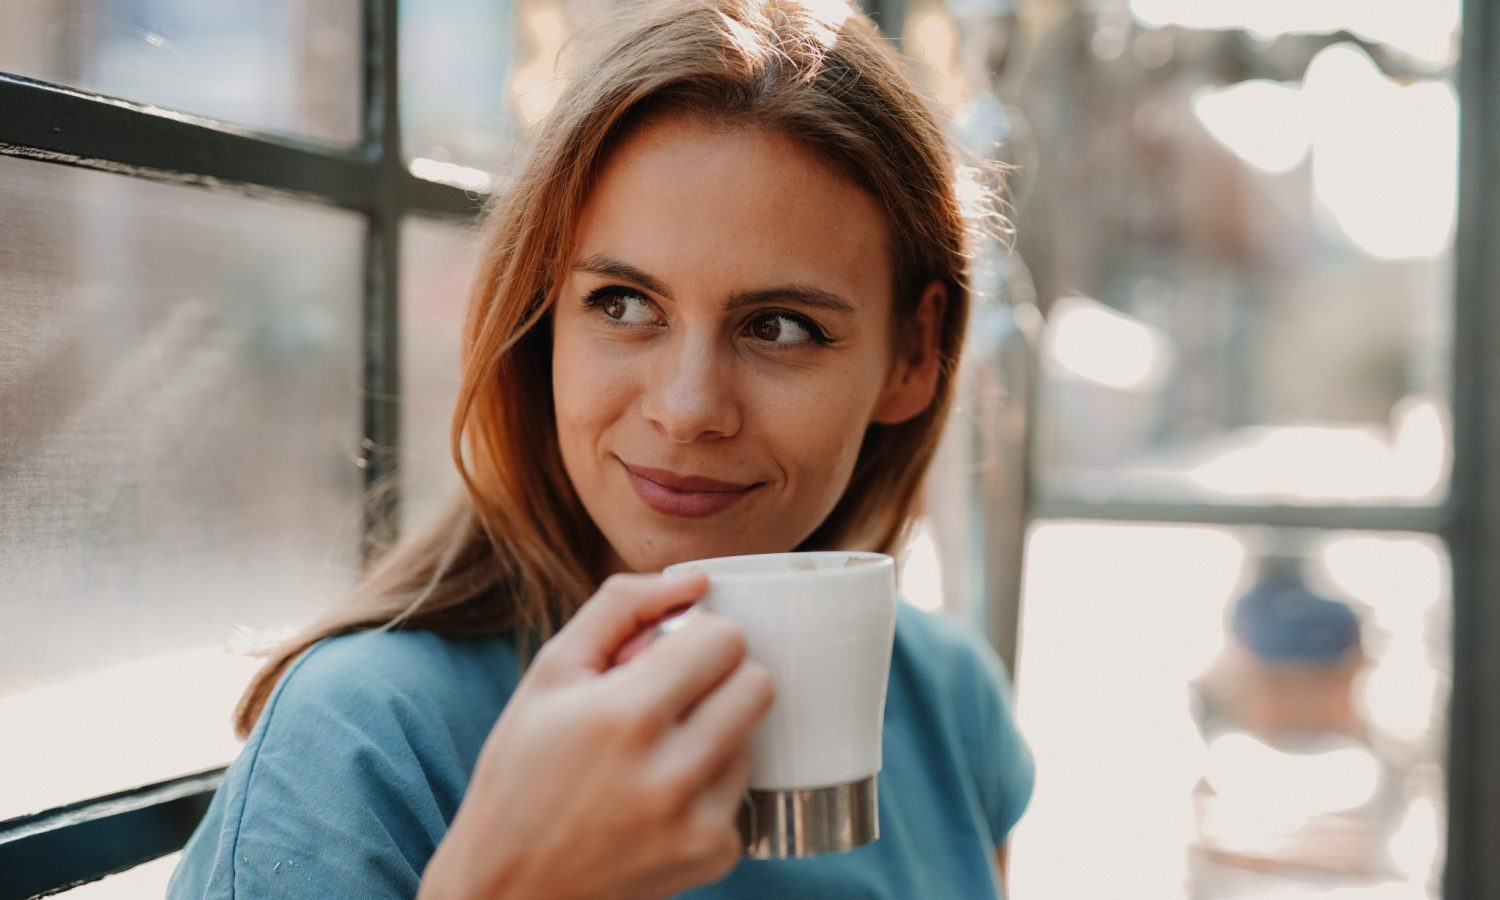 This Type Of Coffee Is Best For Your Heart Health